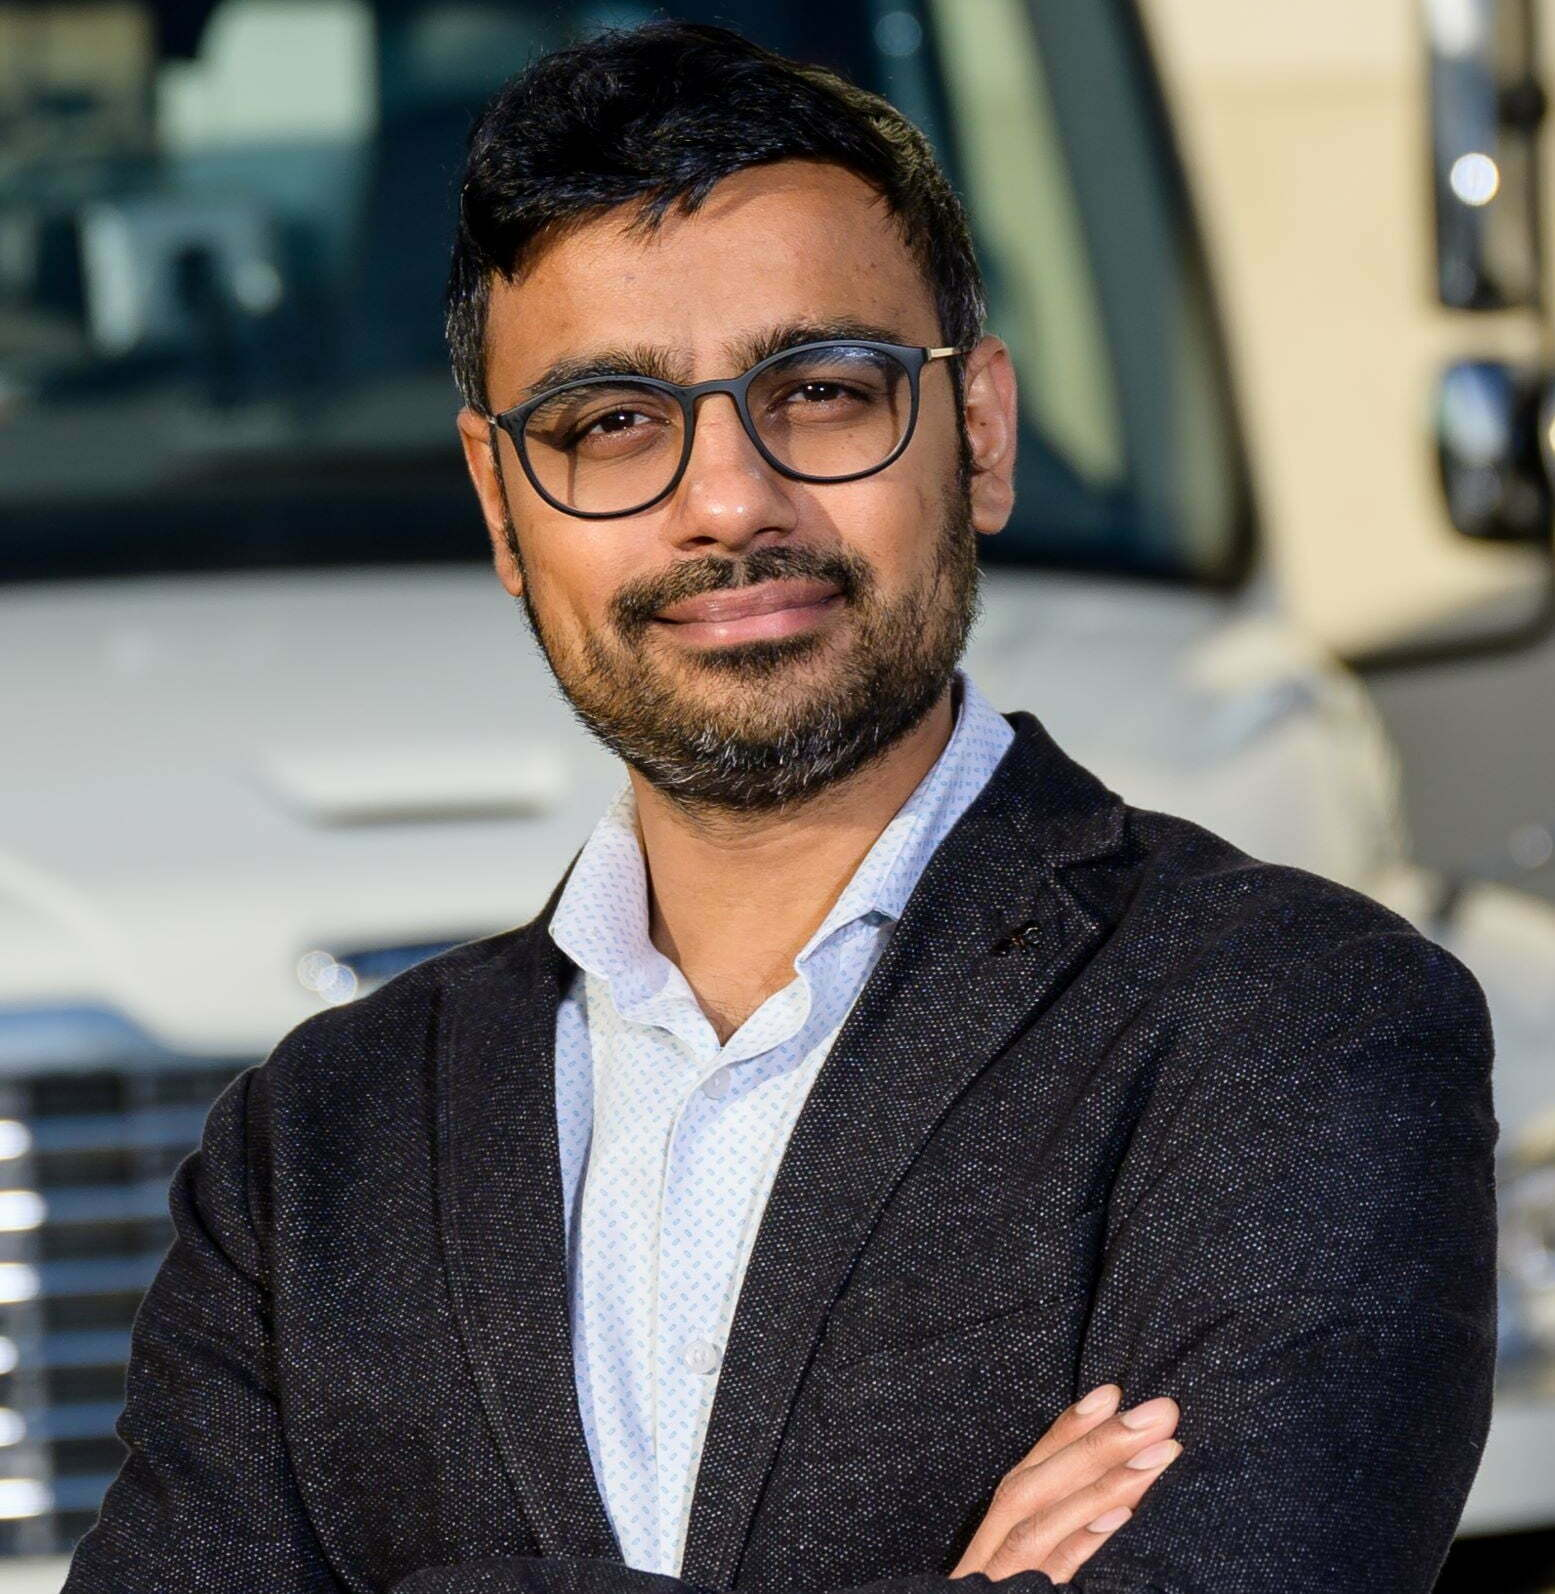 Manny Saxena, CEO of West Sweeping Services Holdings. a holding company comprising of two of the largest street sweeping companies in California.